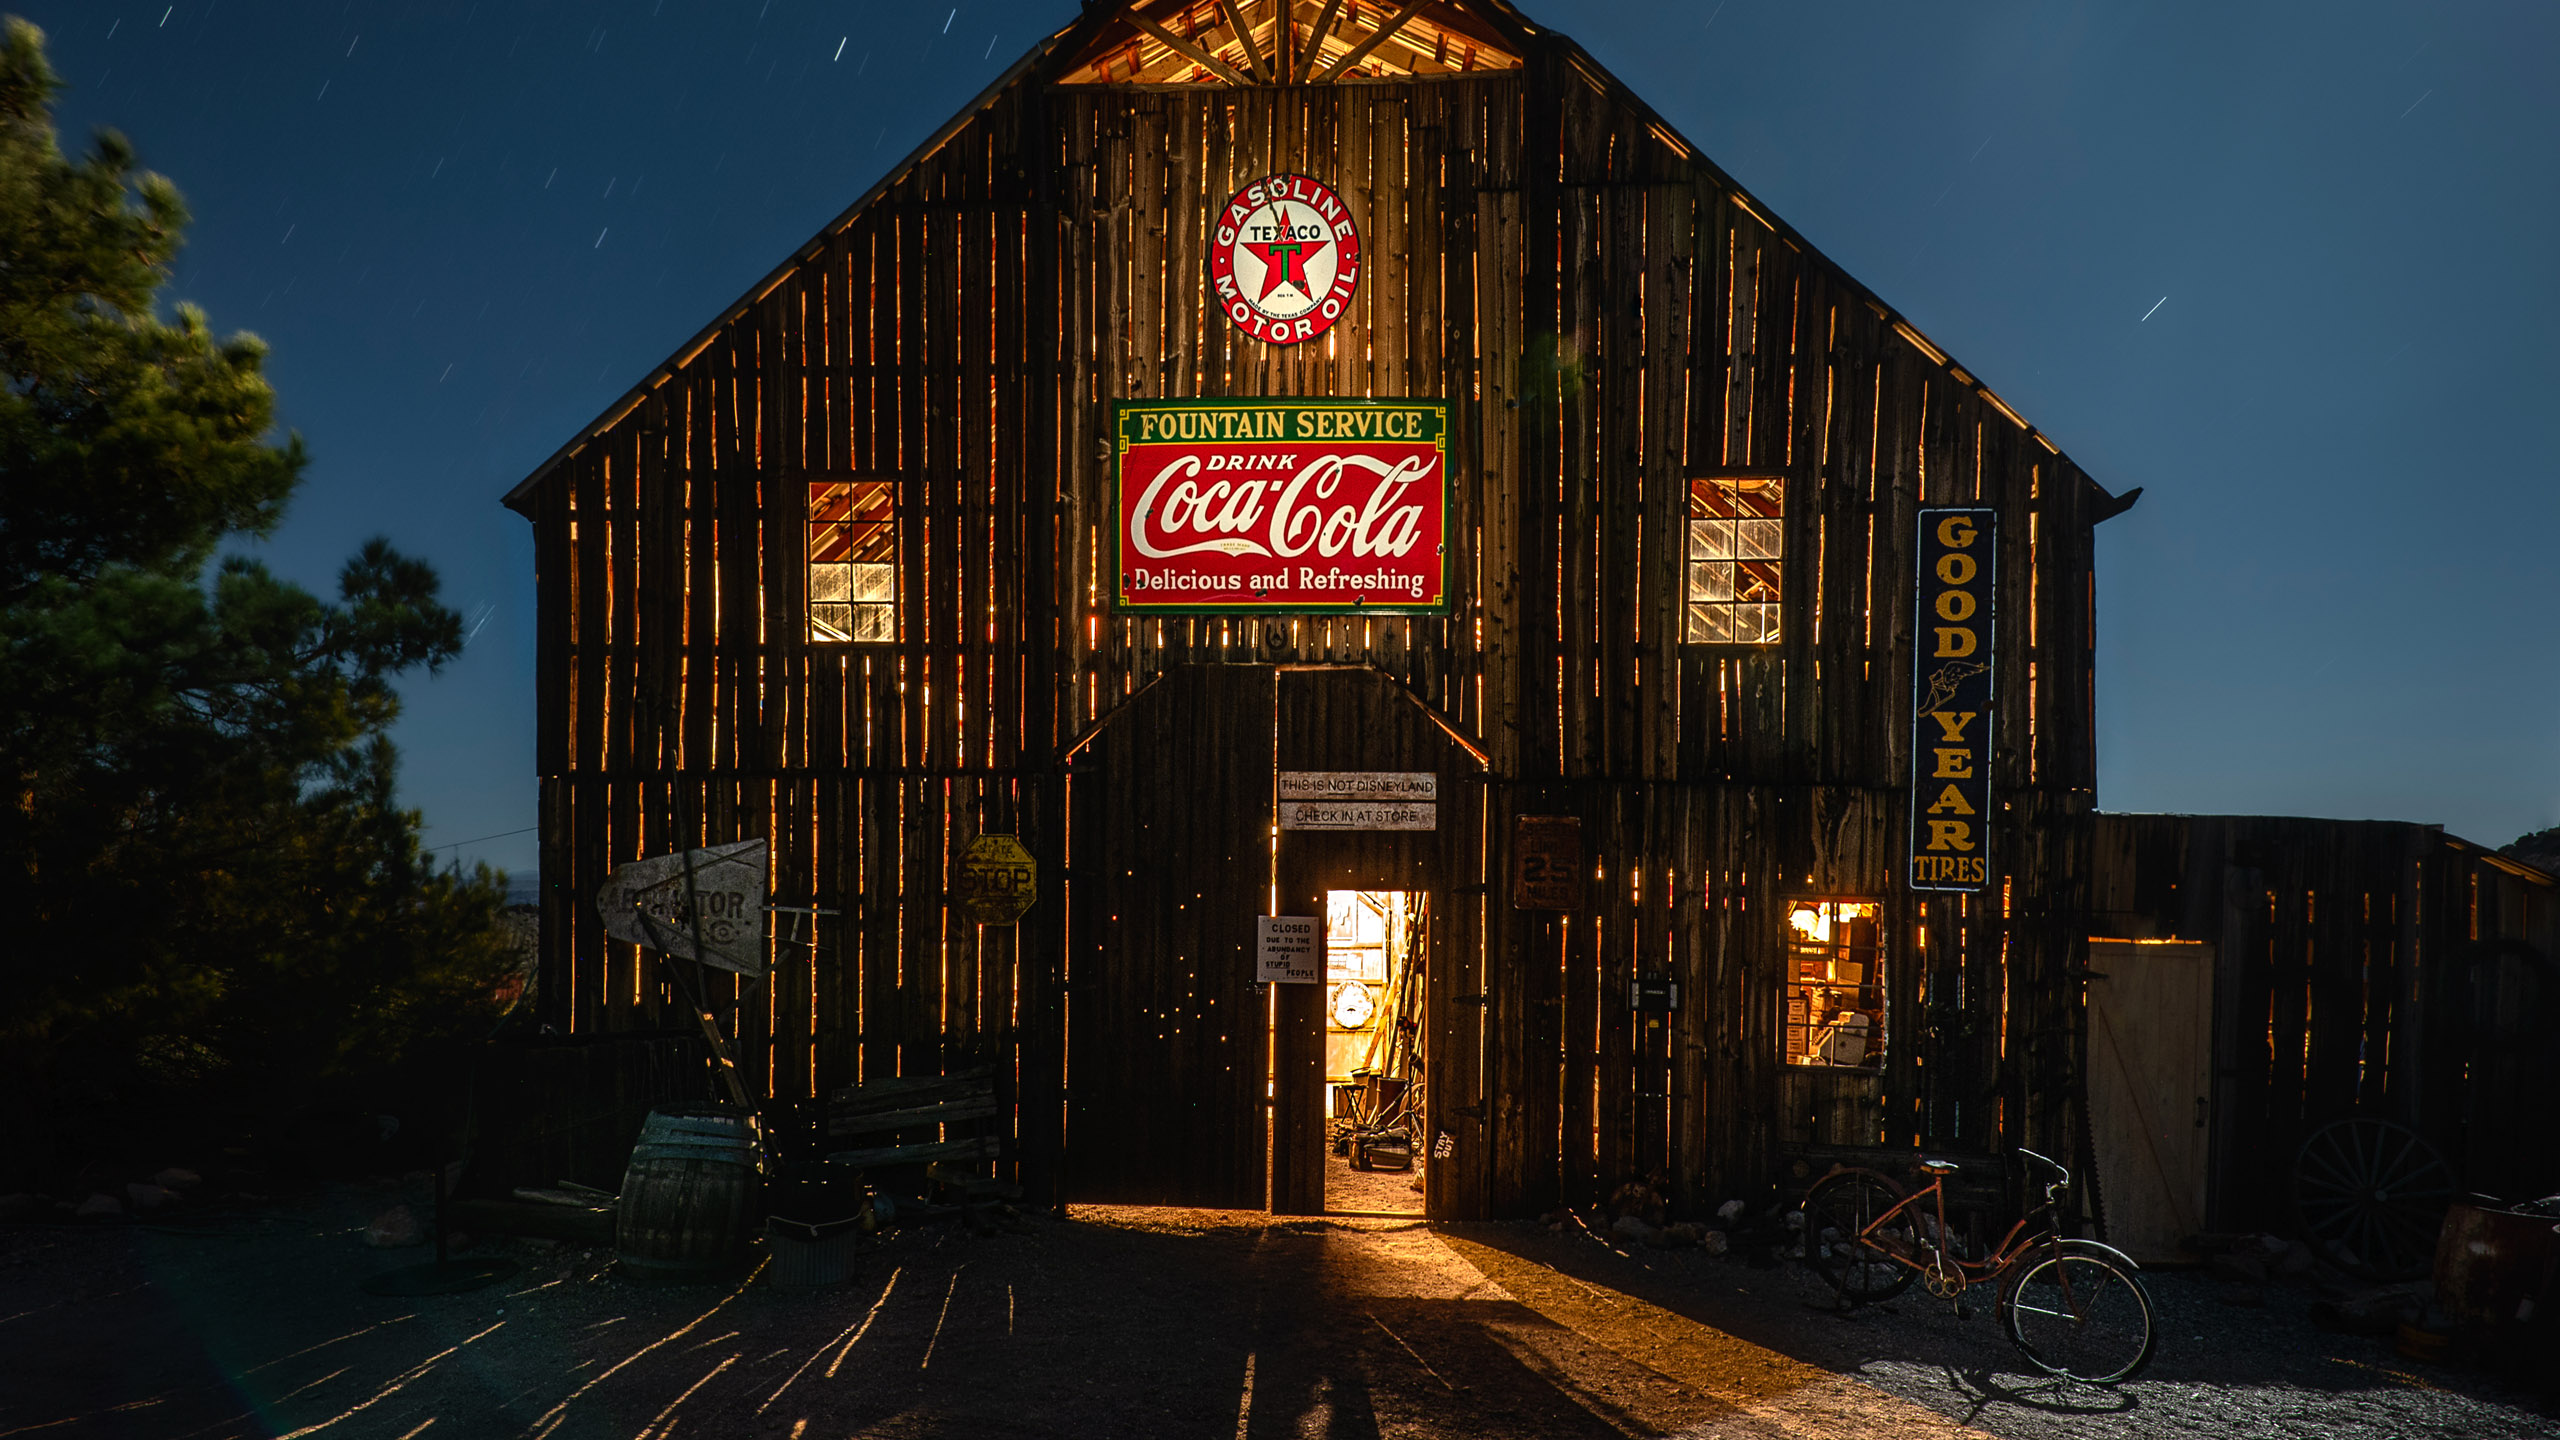 4904_kenlee_october2019trip_191010_2036_195sf8iso320_barn-glowing-from-within_PHOTOFOCUS HEADER